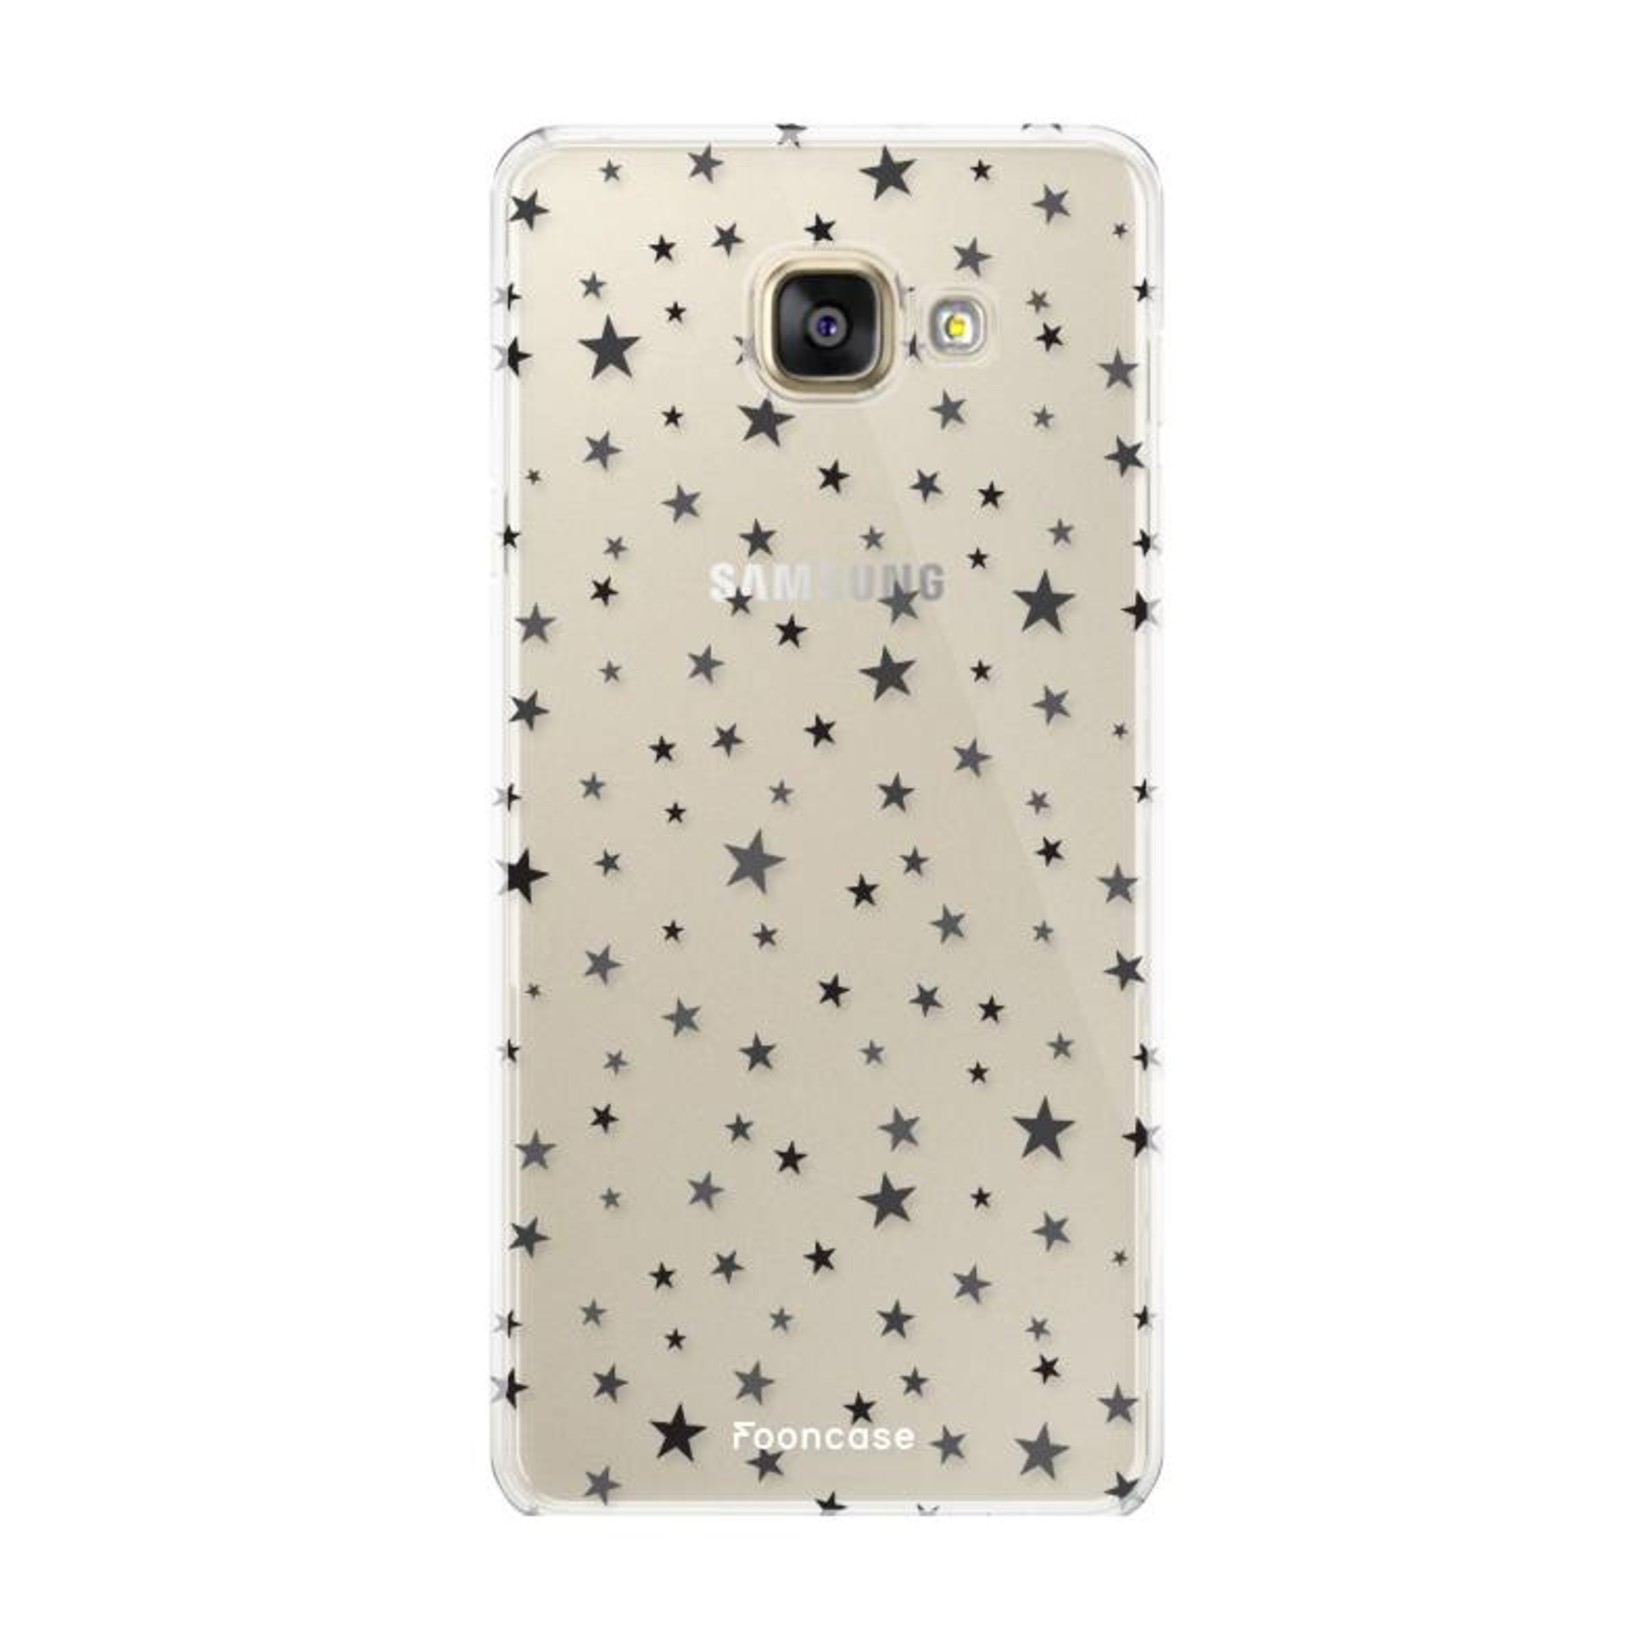 FOONCASE Samsung Galaxy A3 2016 hoesje TPU Soft Case - Back Cover - Stars / Sterretjes